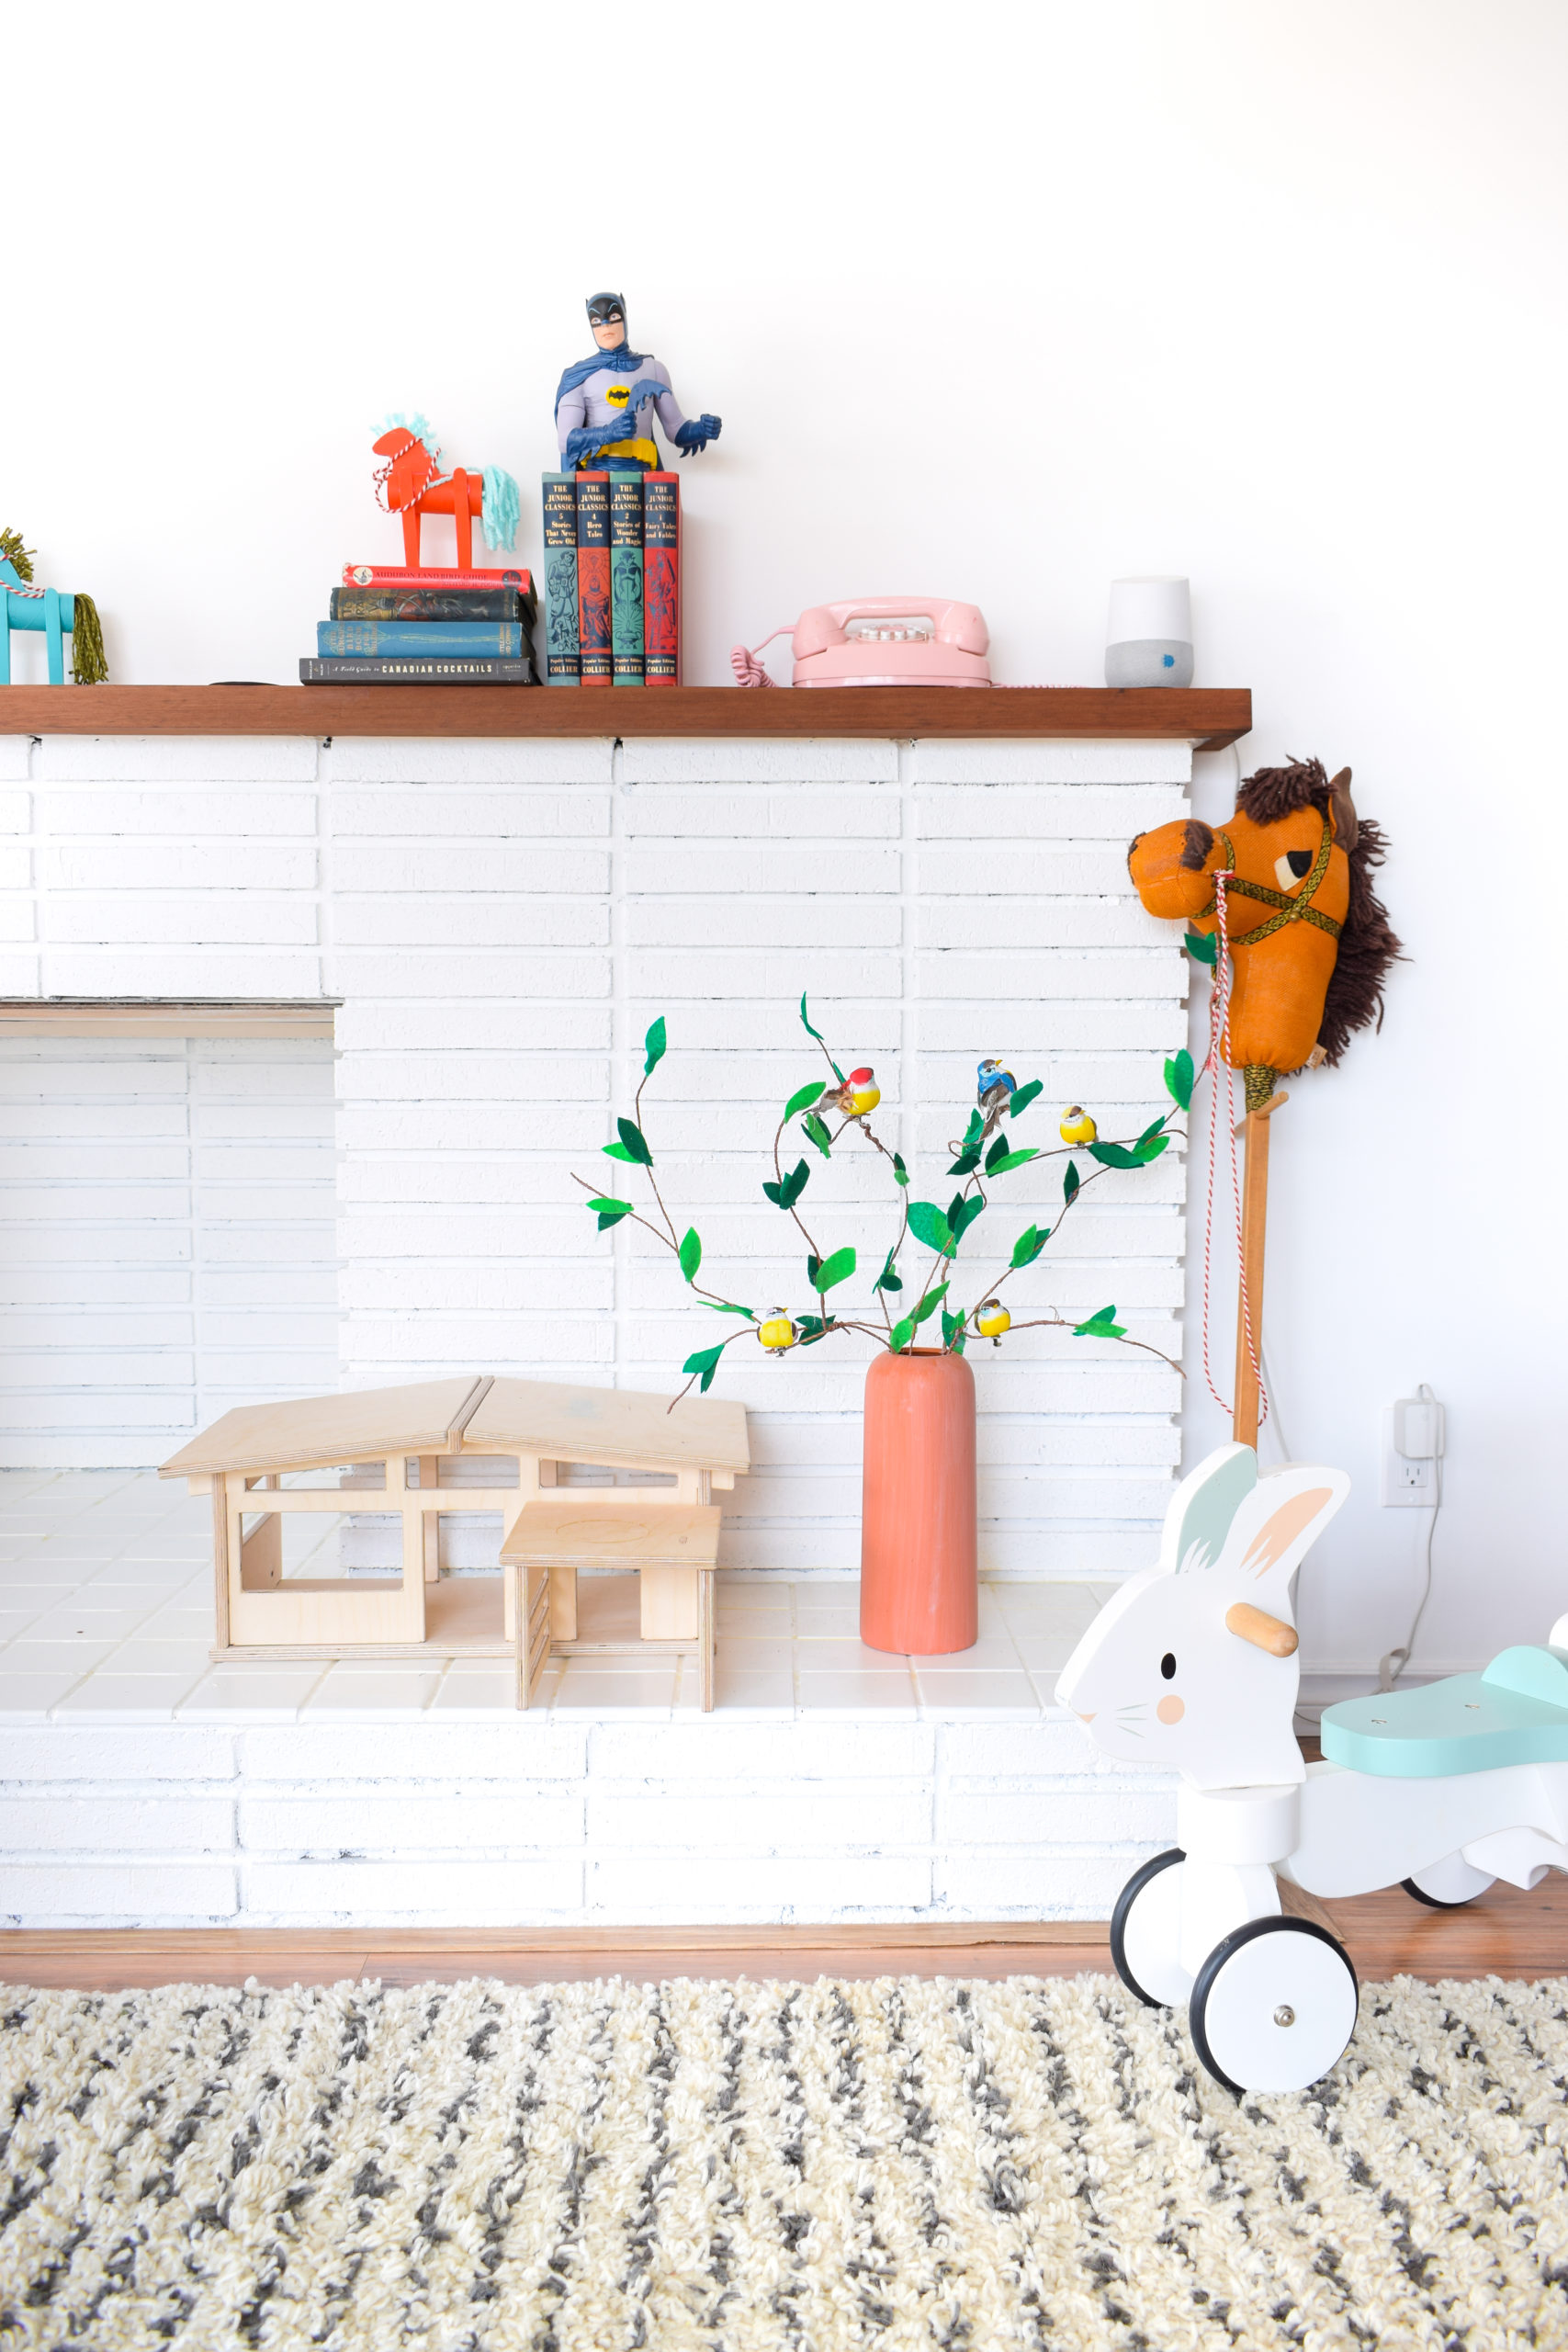 Create DIY Felted Branches aka toddler friendly greenery, using crafting wire, felt, and some little birds. Don't forget the perfect crafting scissors too!